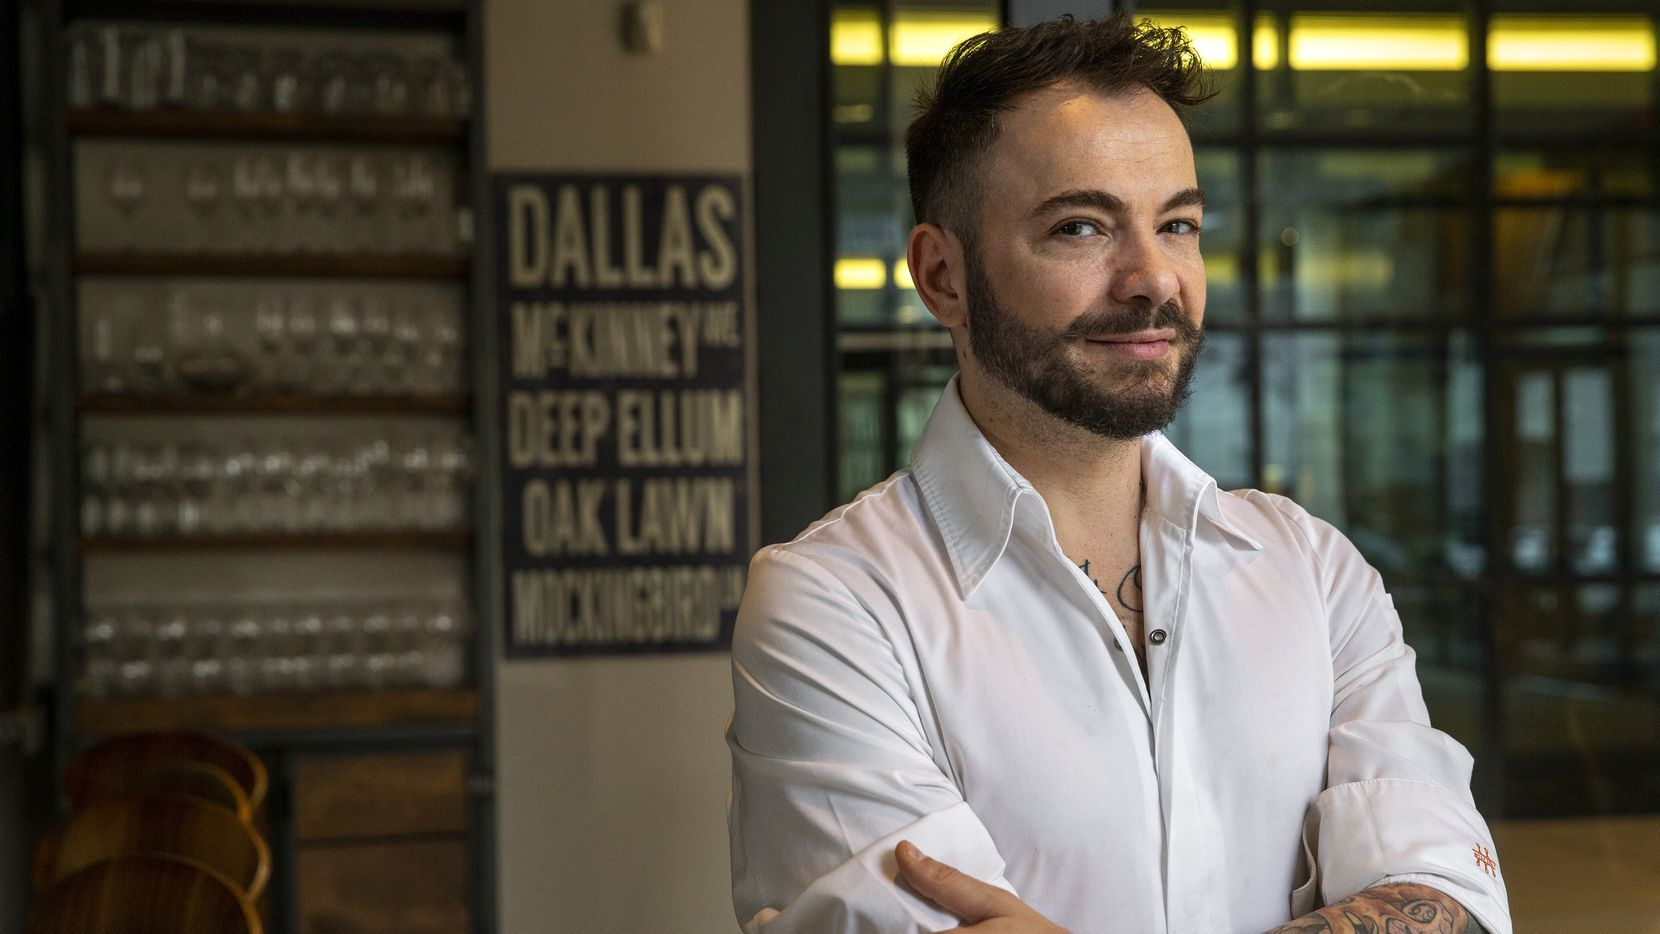 Chef Giuliano Matarese poses for a portrait at Mille Lire restaurant in Dallas on Friday, Jan. 17, 2020.